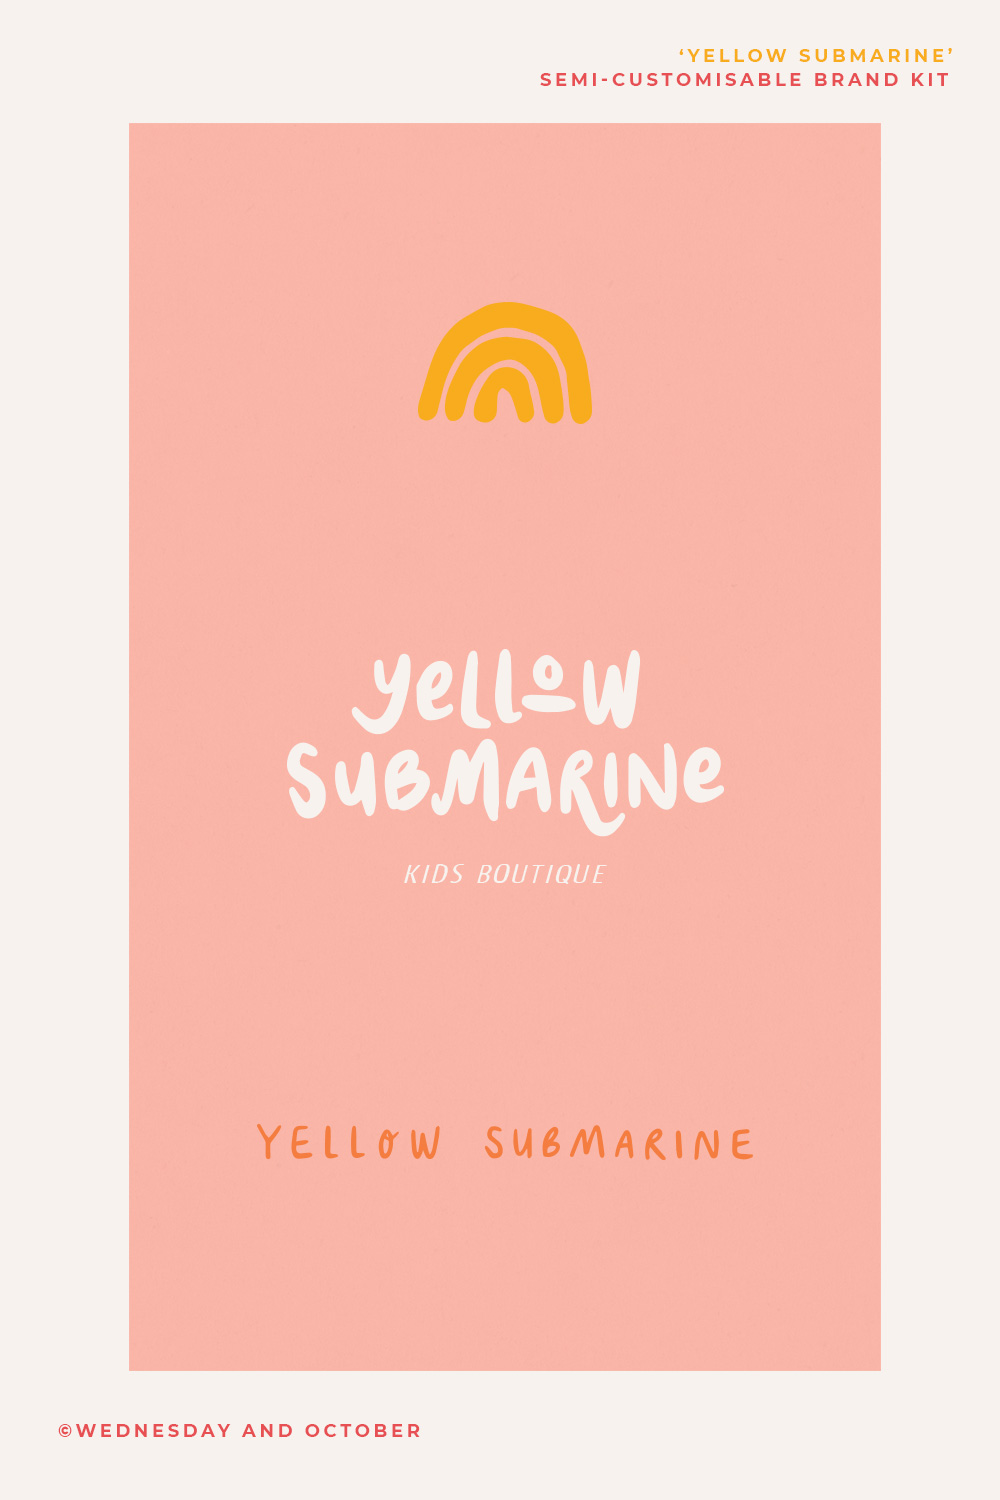 Customisable-Brand-Kit-Yellow-Submarine